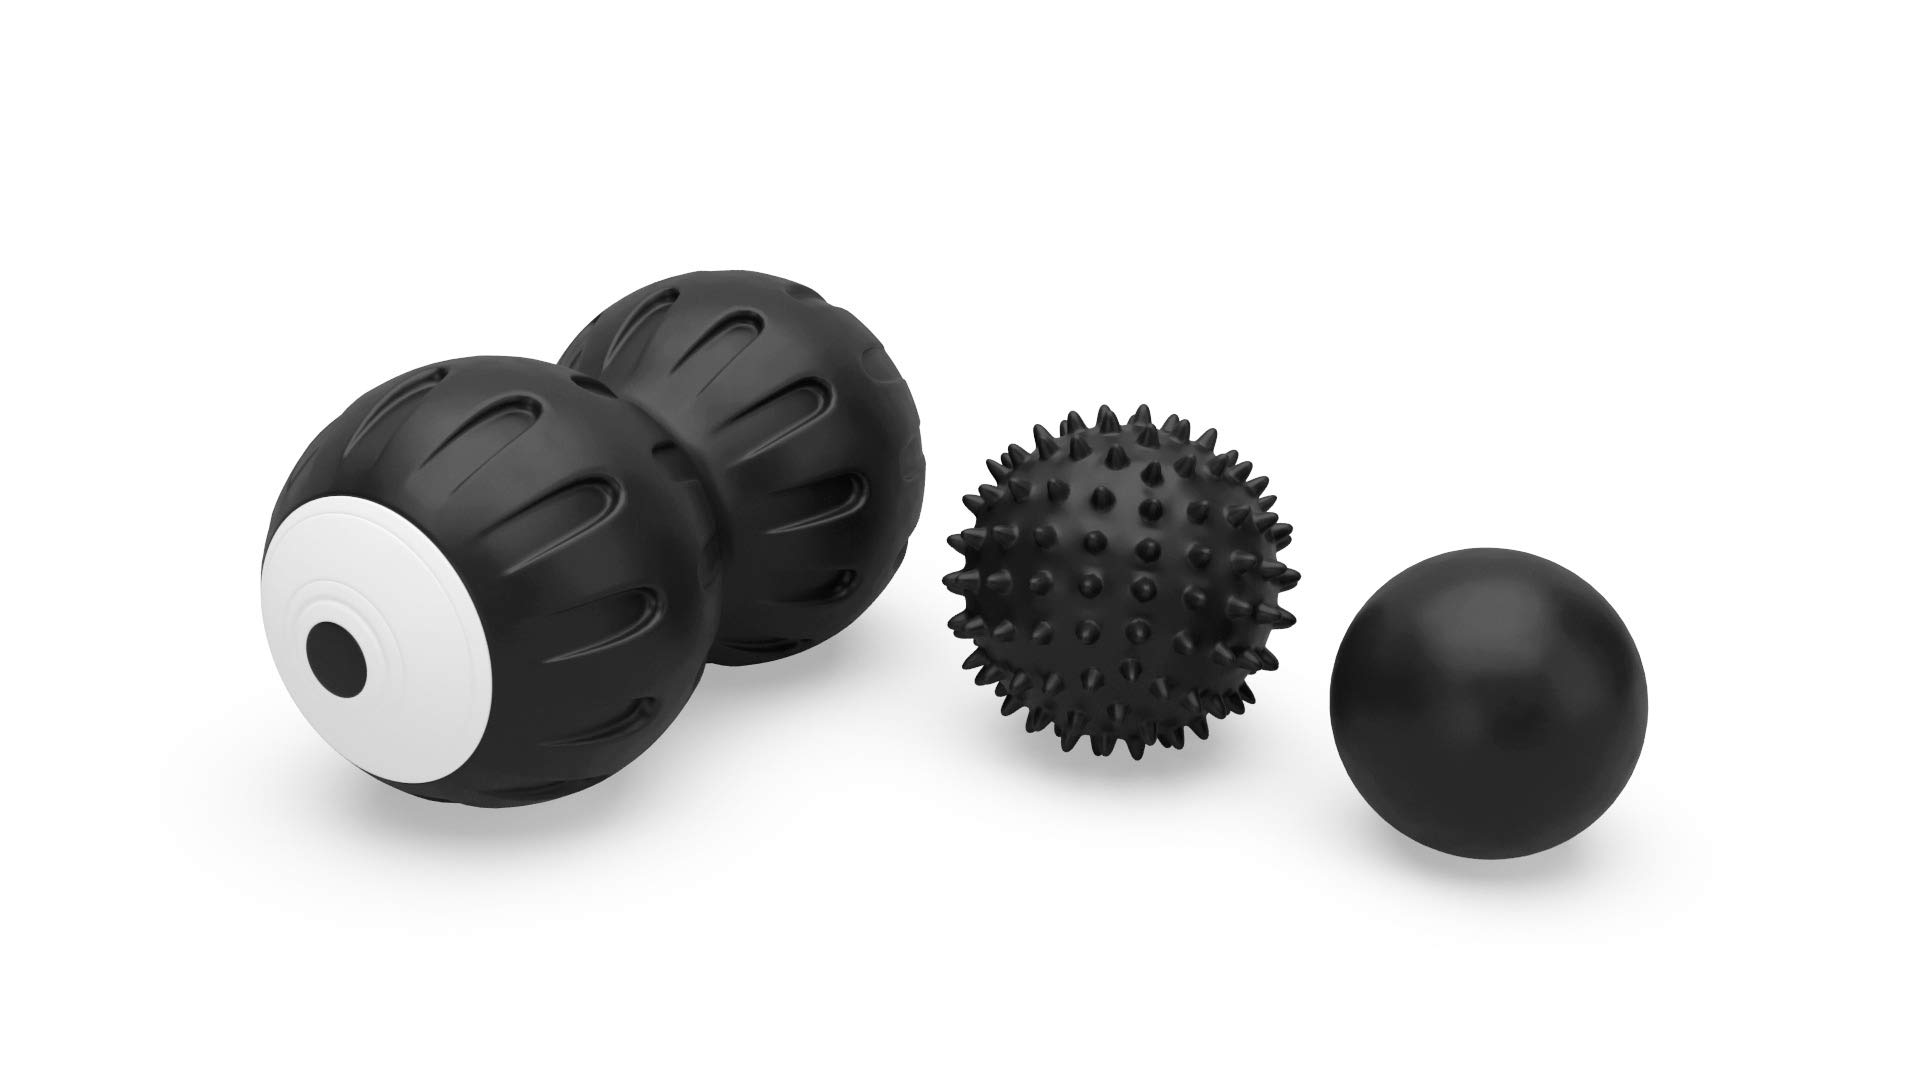 GGAI Vibrating Peanut Massage Ball,Lacrosse - Spiky Ball Set for Myofascial Release. Features A Deep Tissue Double Massage Ball Roller for Back Relief,Neck Relief,Tension Release - Muscle Release